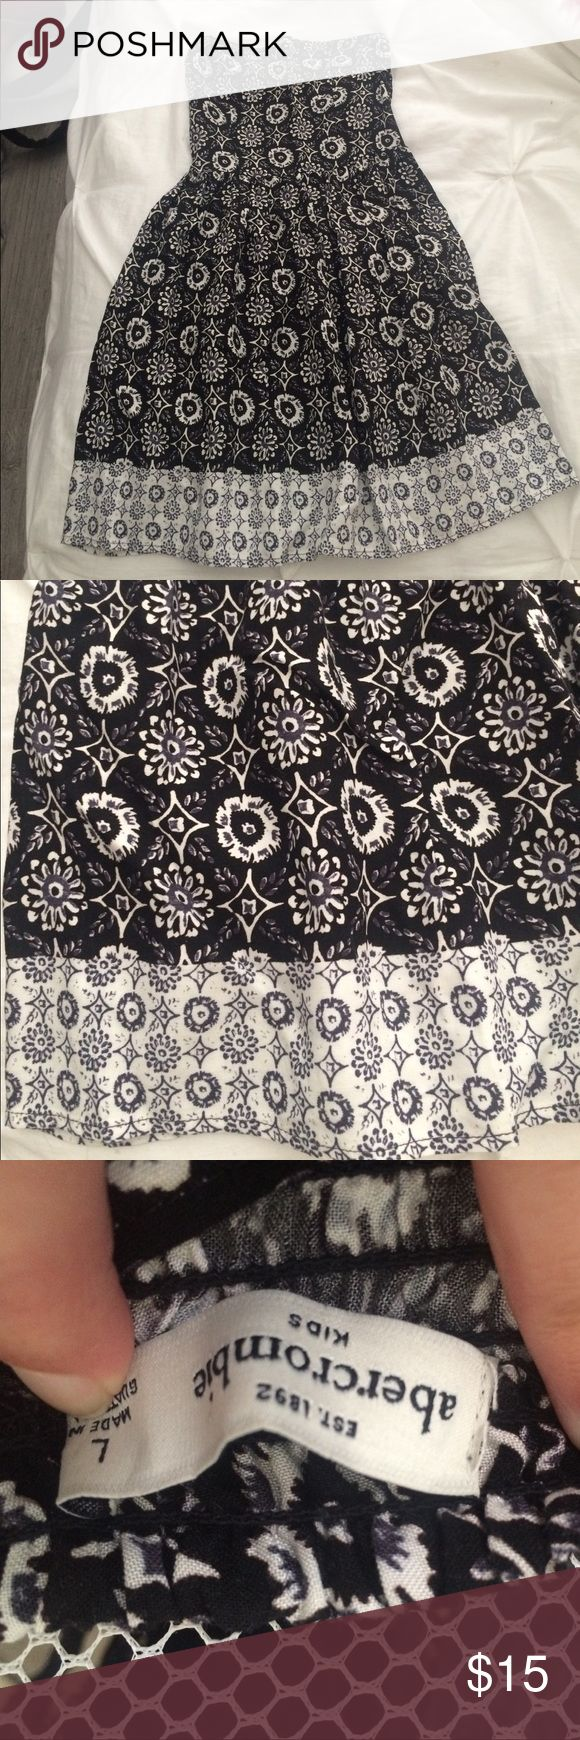 Abercrombie strapless girls sundress Cute & stylish Black & White Strapless Sundress was bought for a wedding; worn only once. Machine wash cold. Lay flat to dry abercrombie kids Dresses Casual